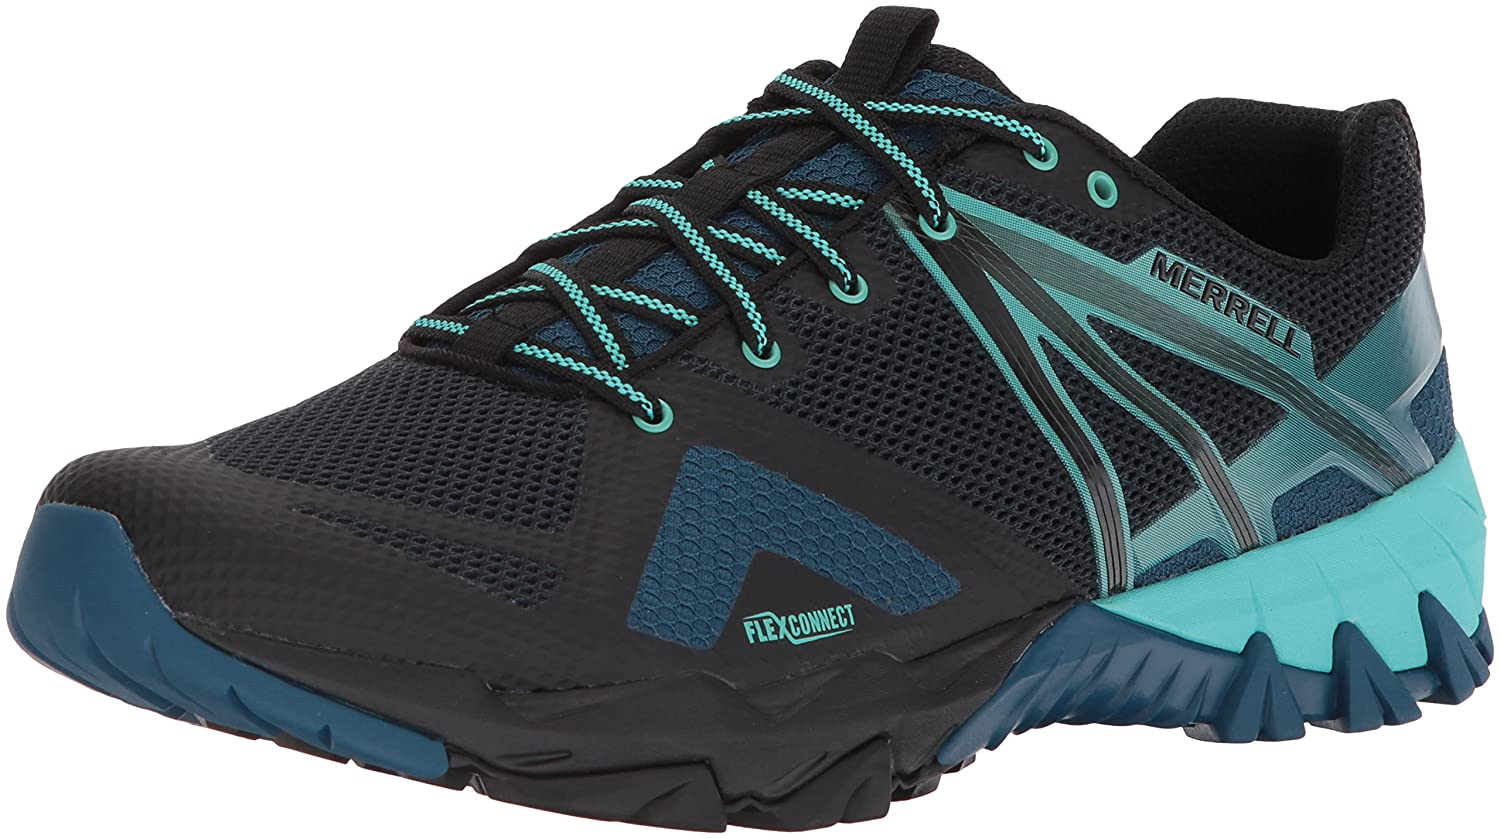 Merrell Men's Mqm Flex B0719KSQN7 8 D(M) US|Legion Blue